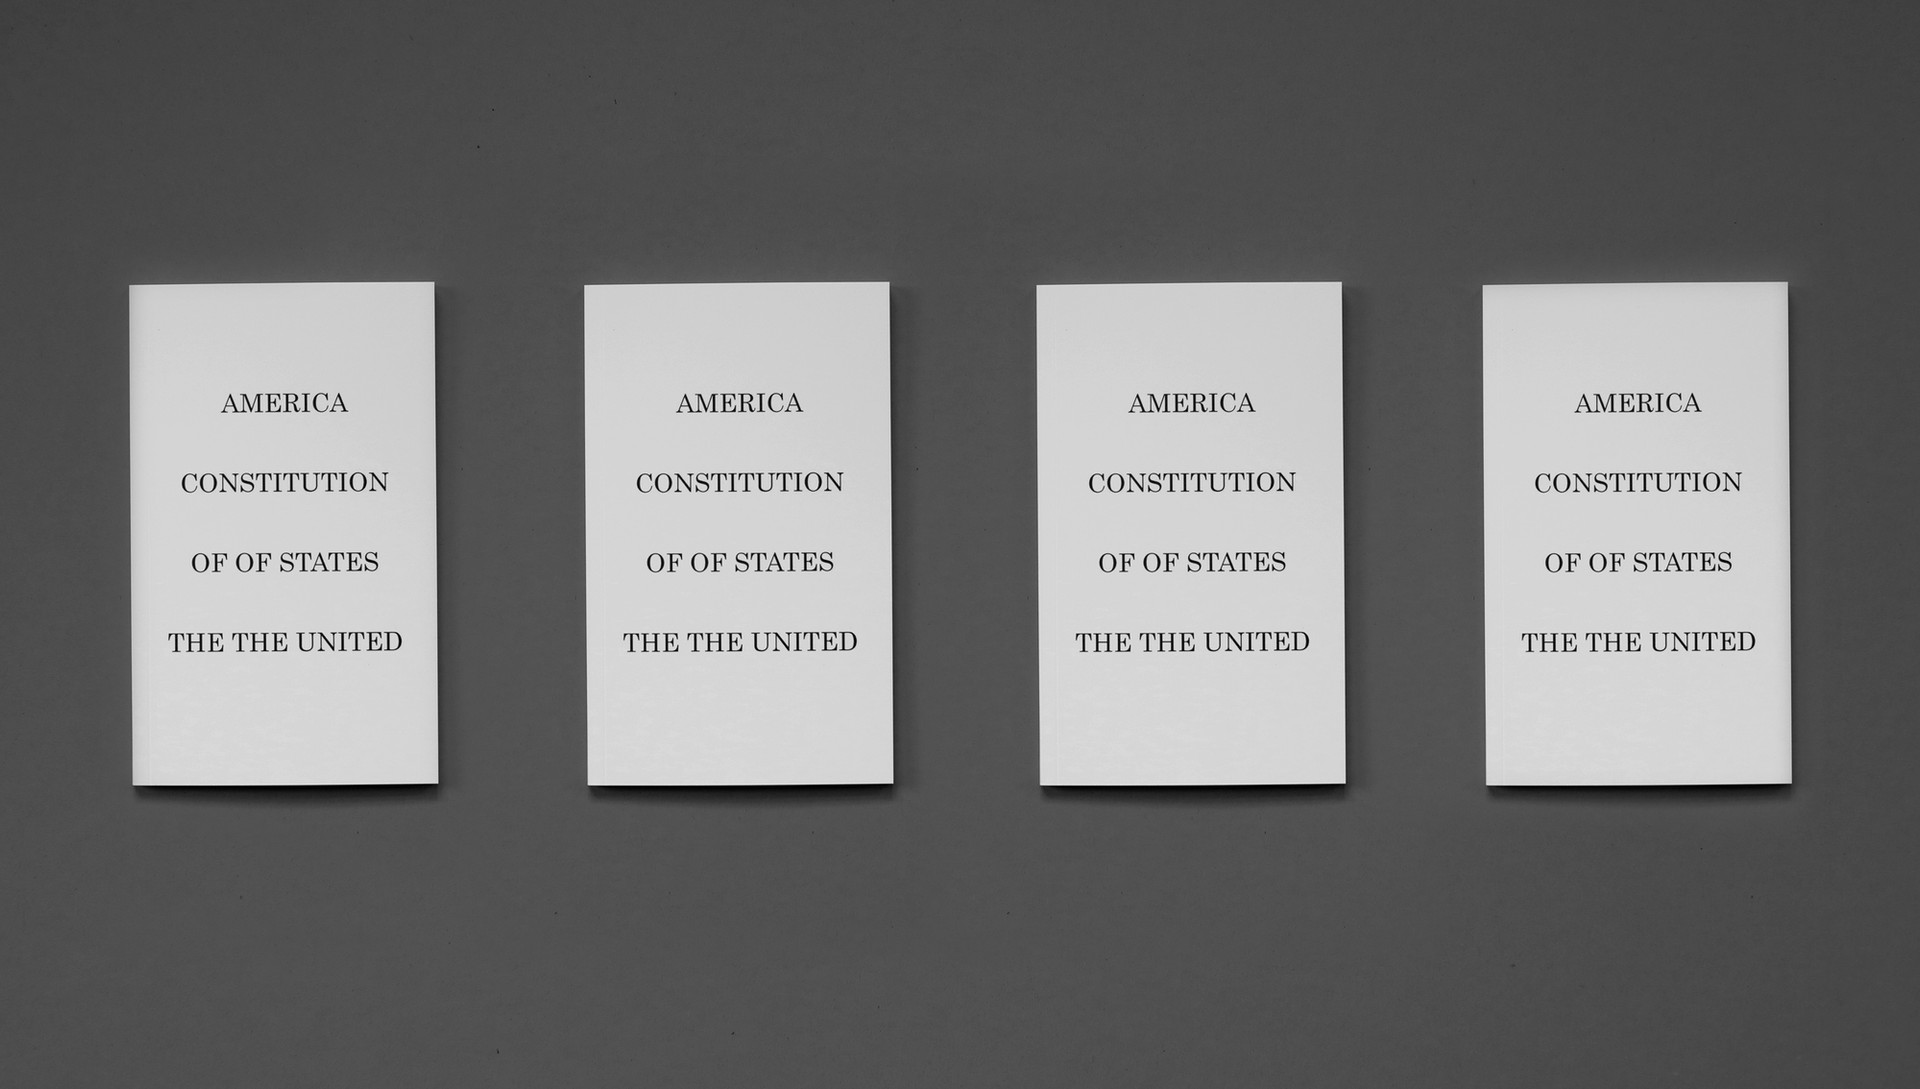 AMERICA CONSTITUTION OF OF STATES THE THE UNITED